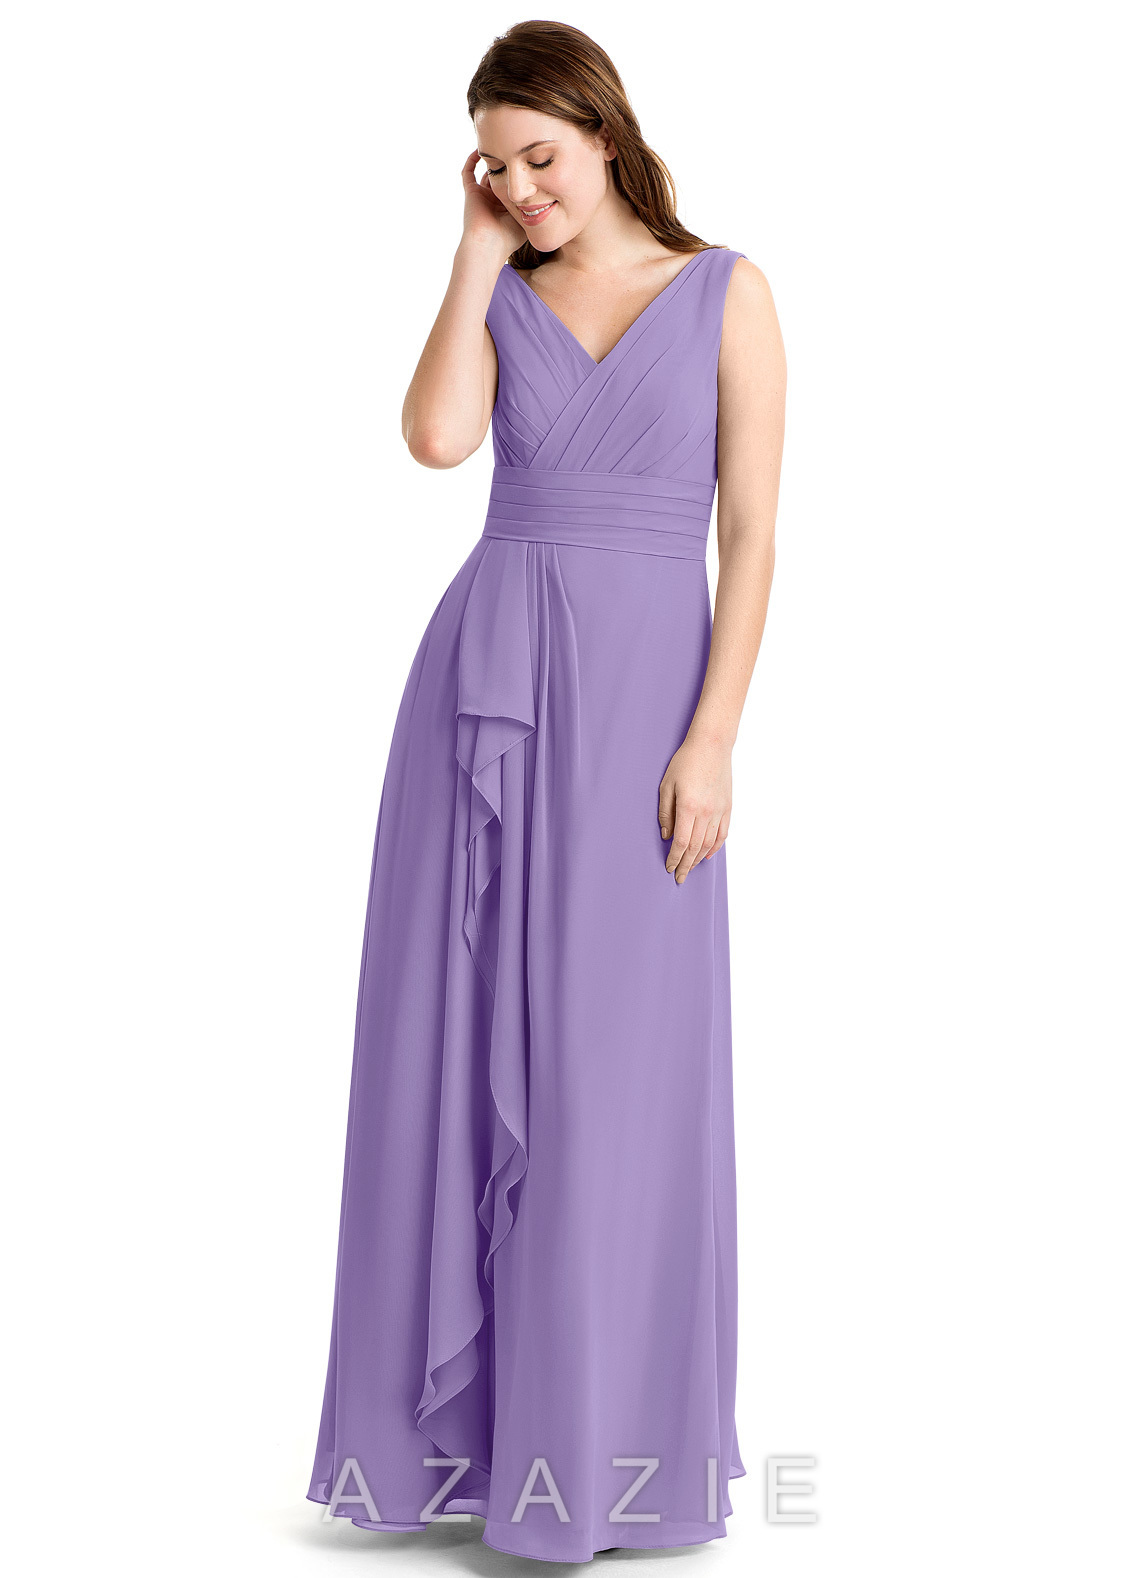 2aaef64ab63a Azazie Julianna Bridesmaid Dress | Azazie